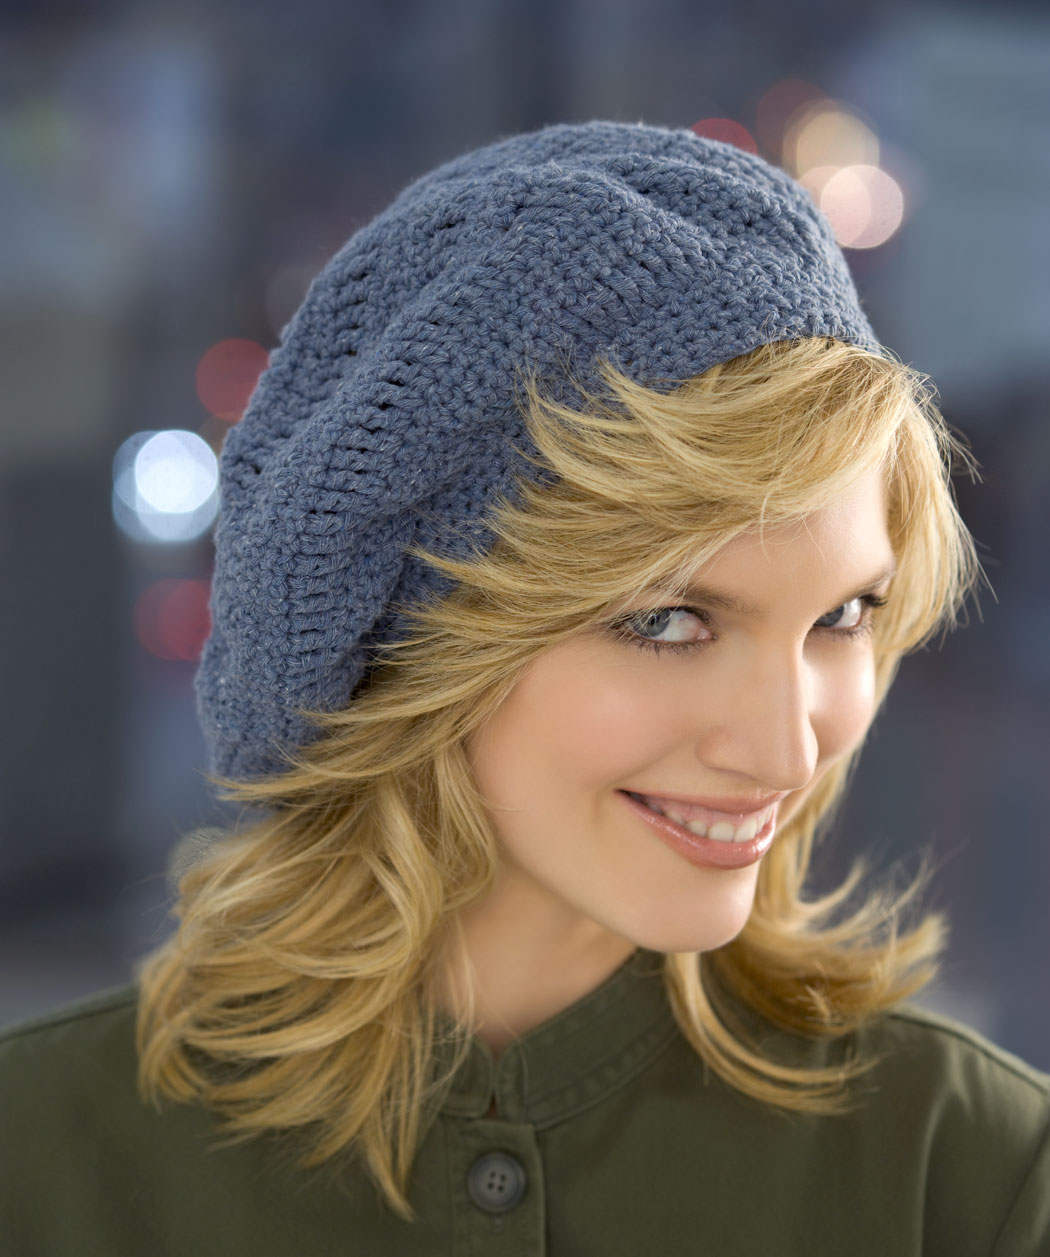 Free Crochet Beanie Beret Pattern : Hopeful Honey Craft, Crochet, Create: 10 Free Basic ...